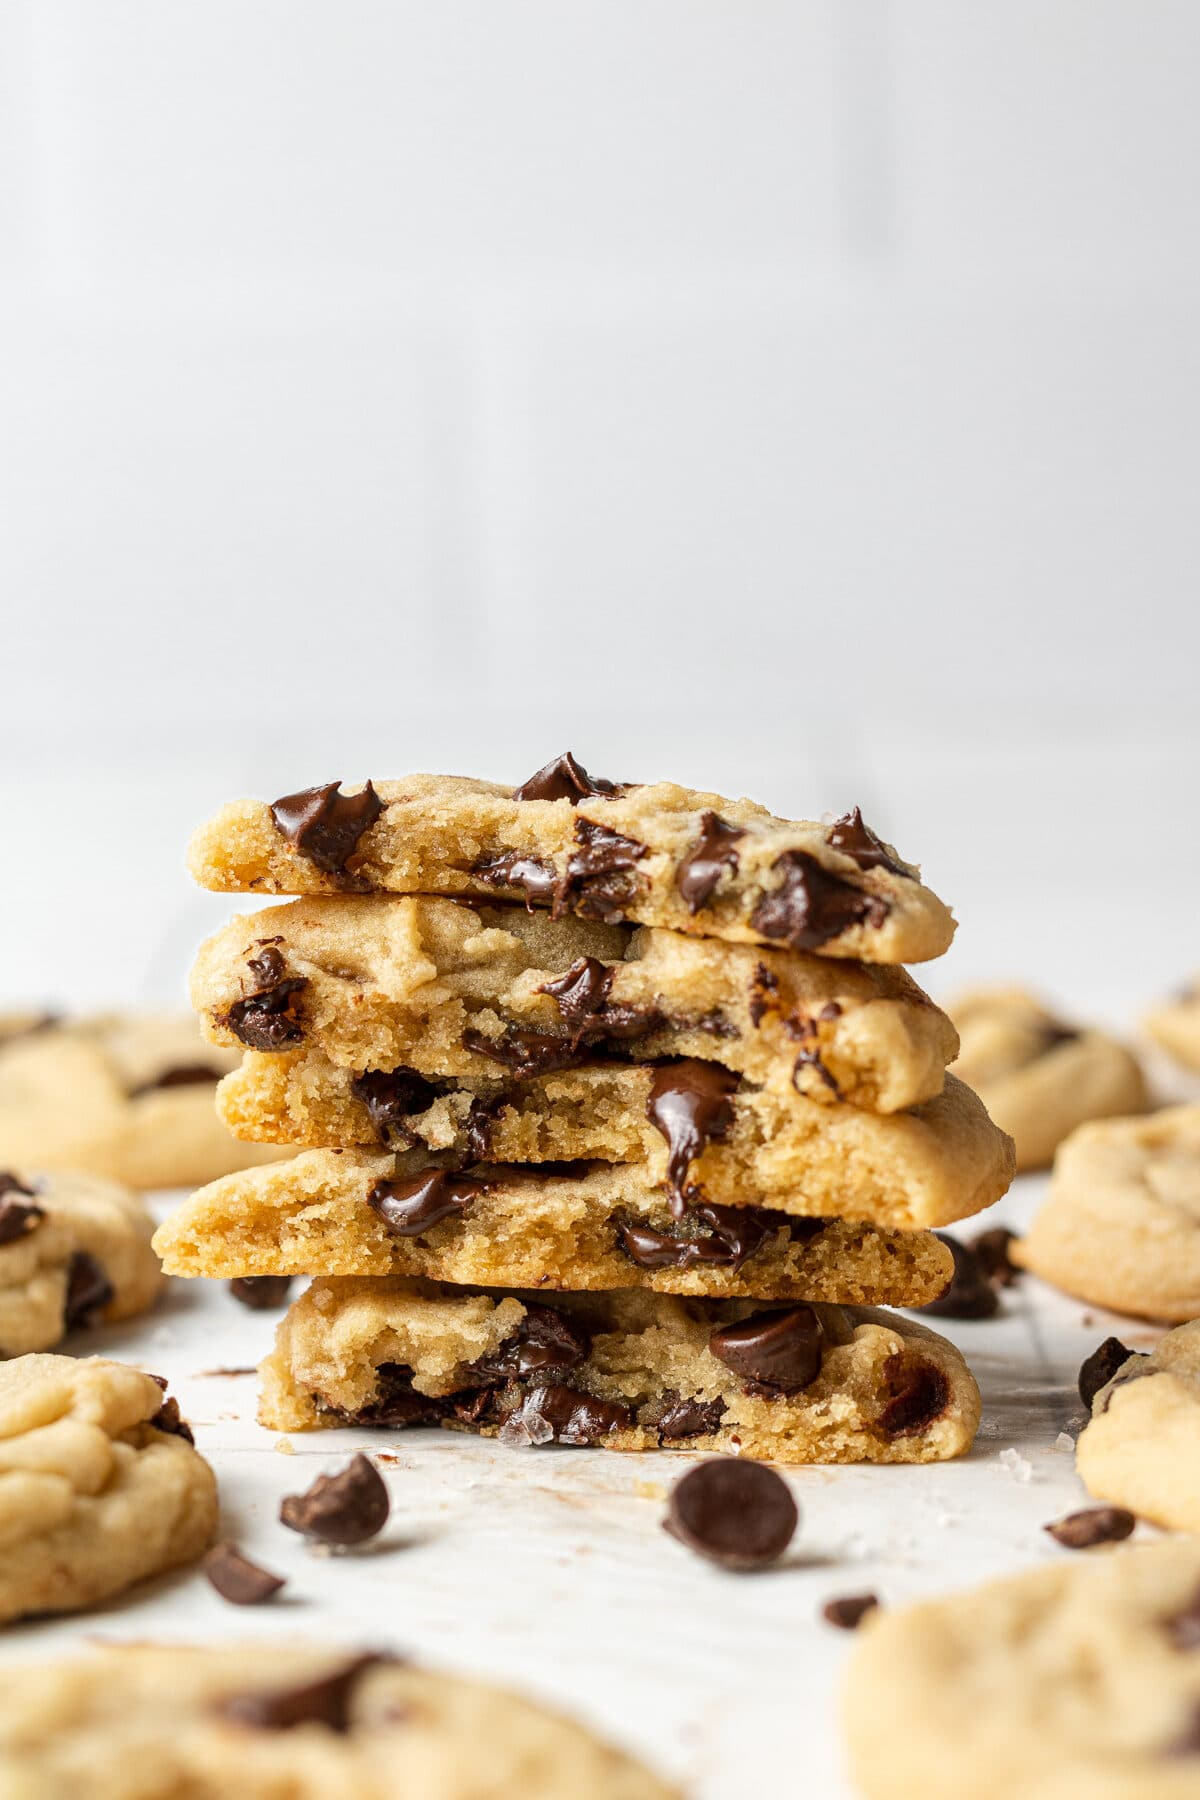 dairy free chocolate chip cookies split in half and stacked on top of each other with more cookies around them